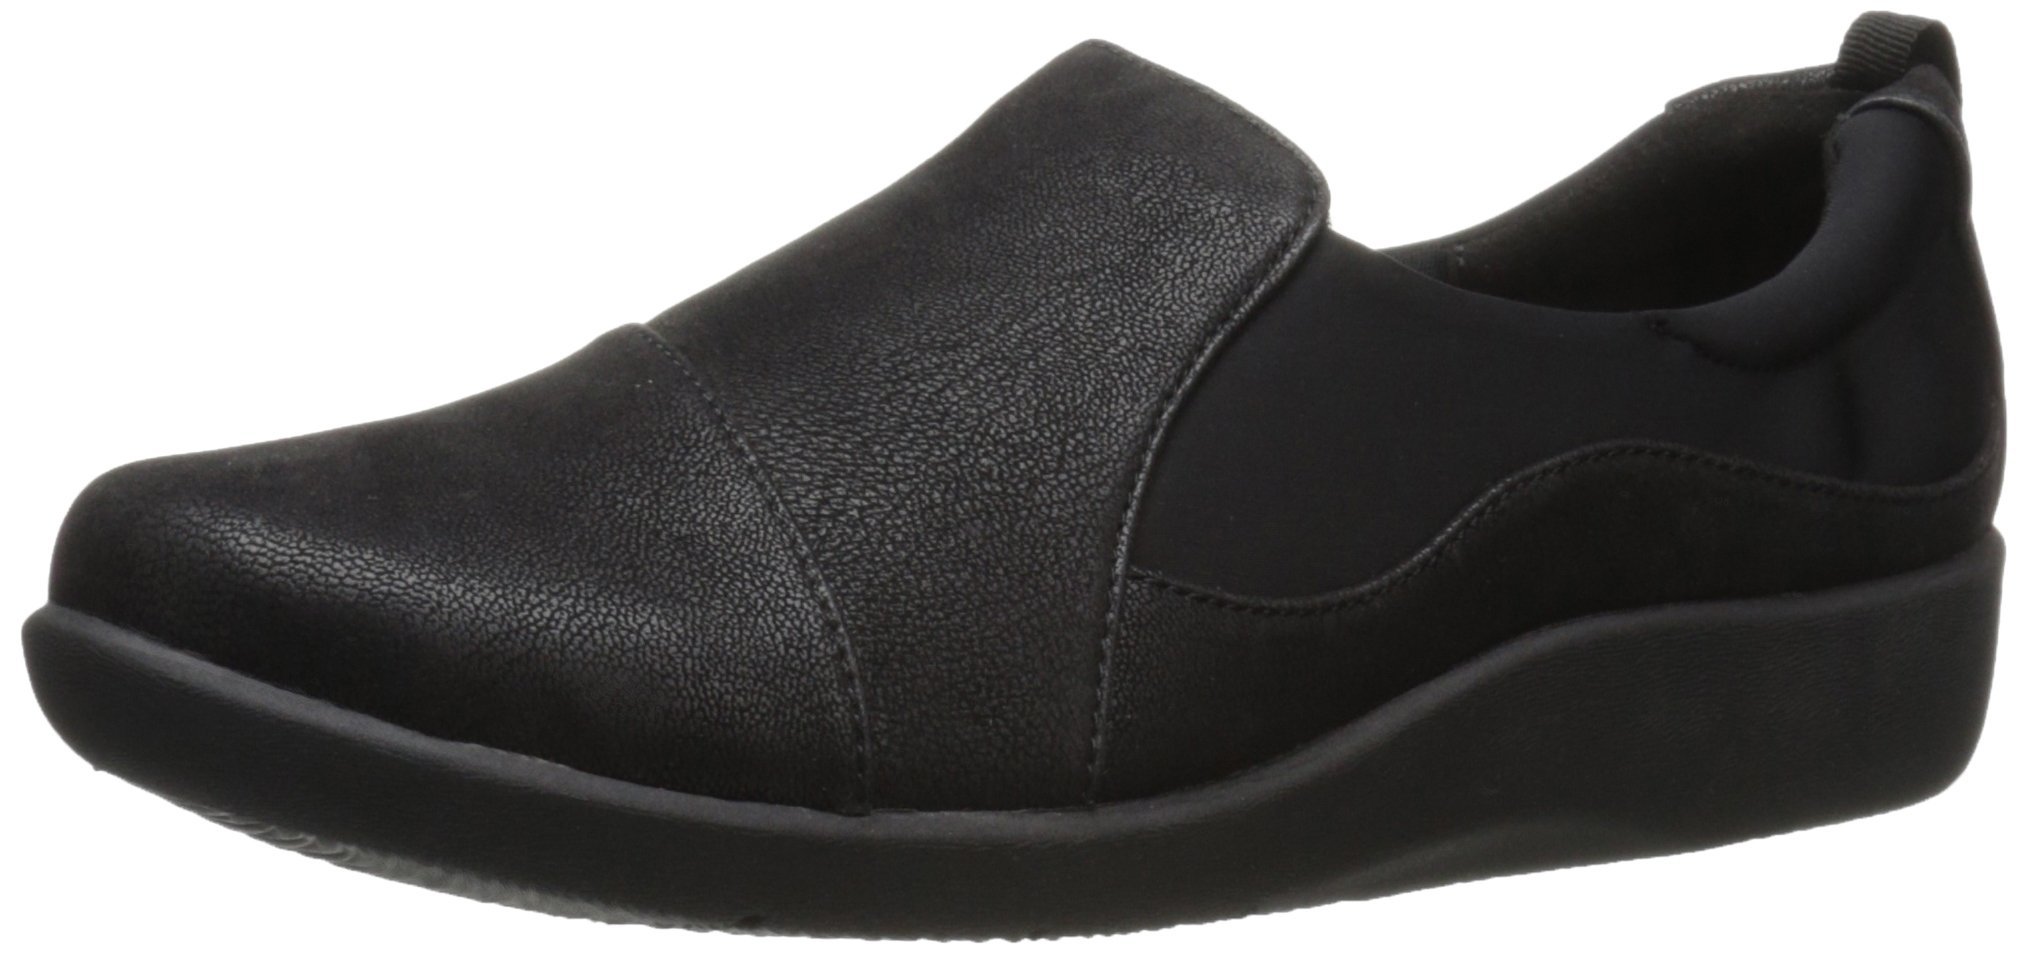 Clarks Women's CloudSteppers Sillian Paz Slip-On Loafer, Black Synthetic Nubuck, 8 M US by CLARKS